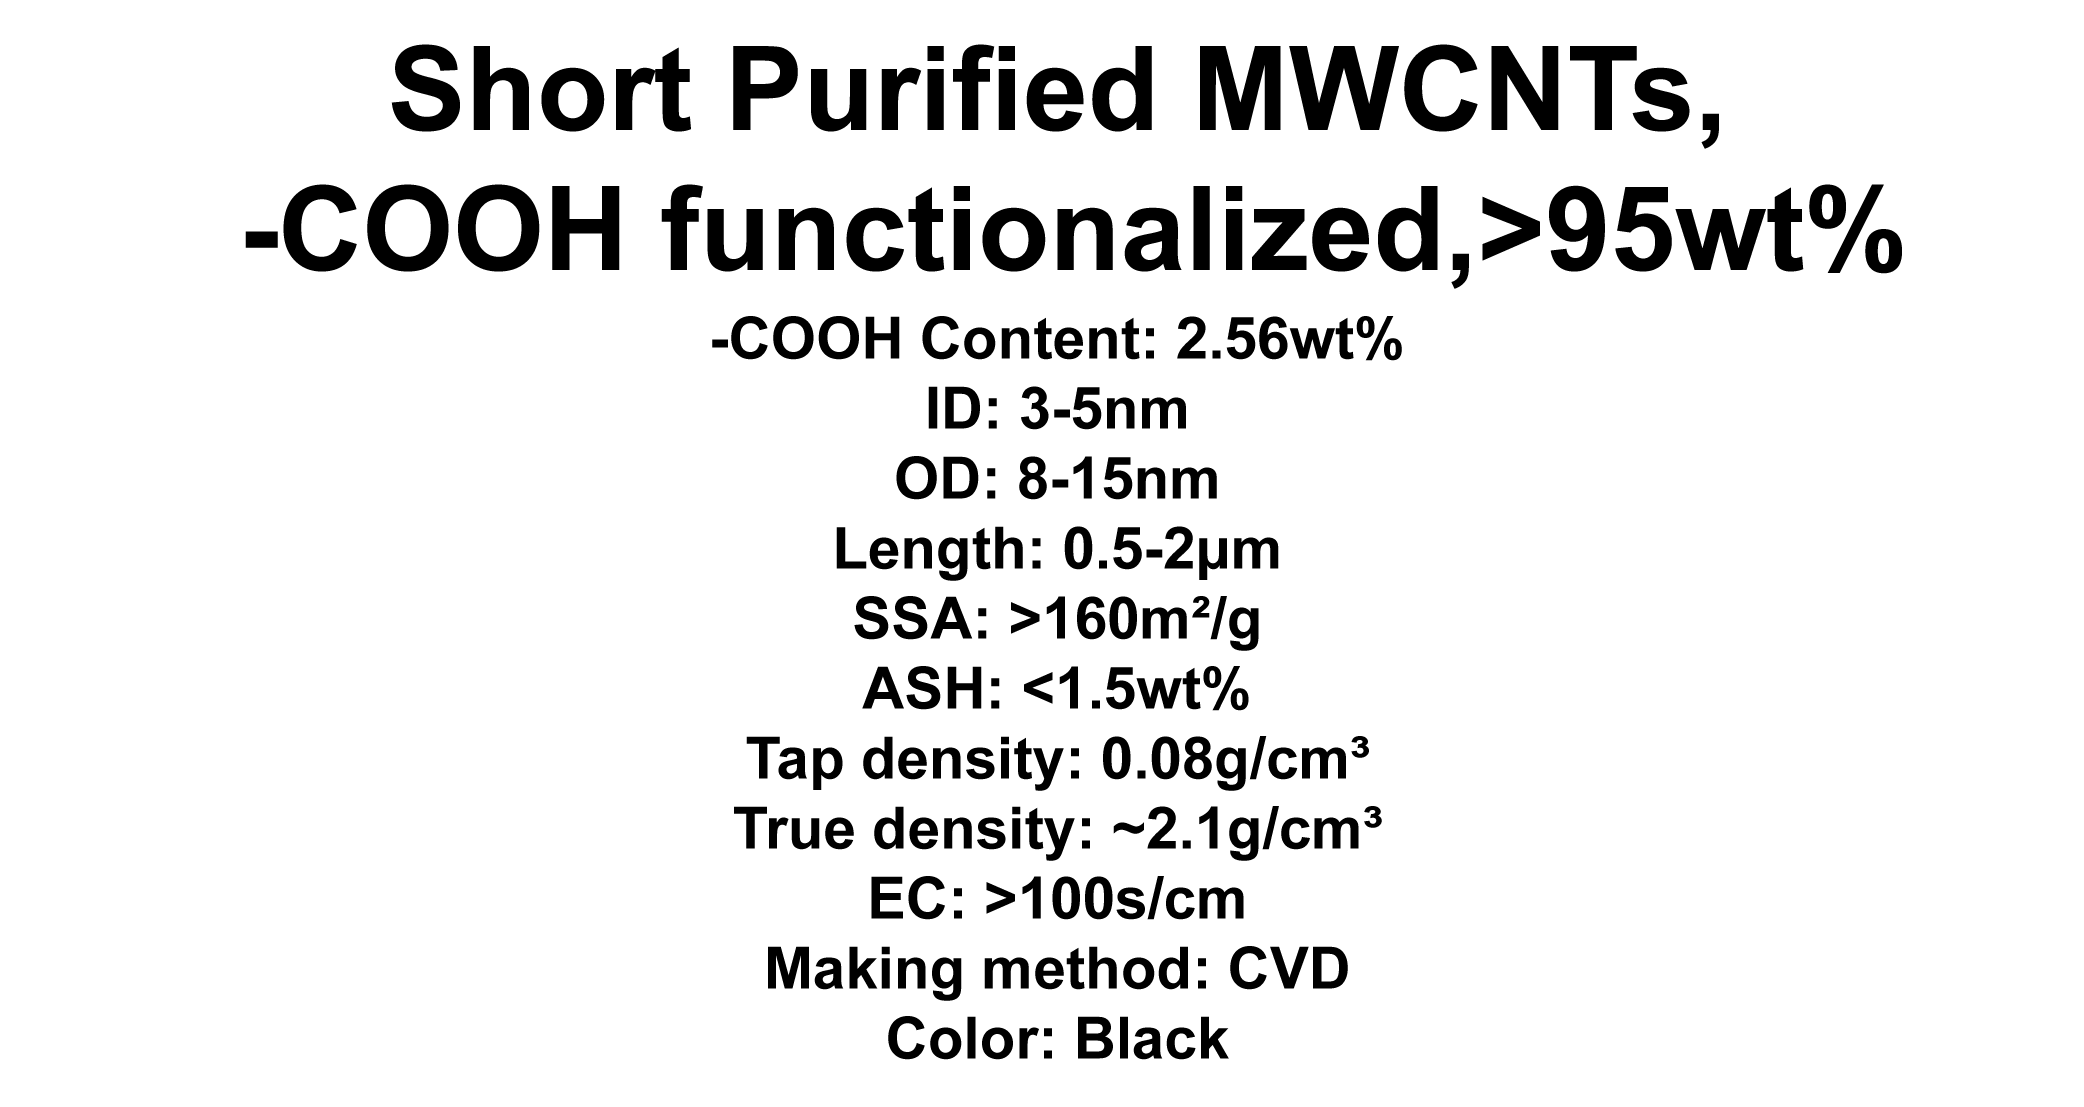 Short Purified MWCNTs, -COOH functionalized (TNSMC2)